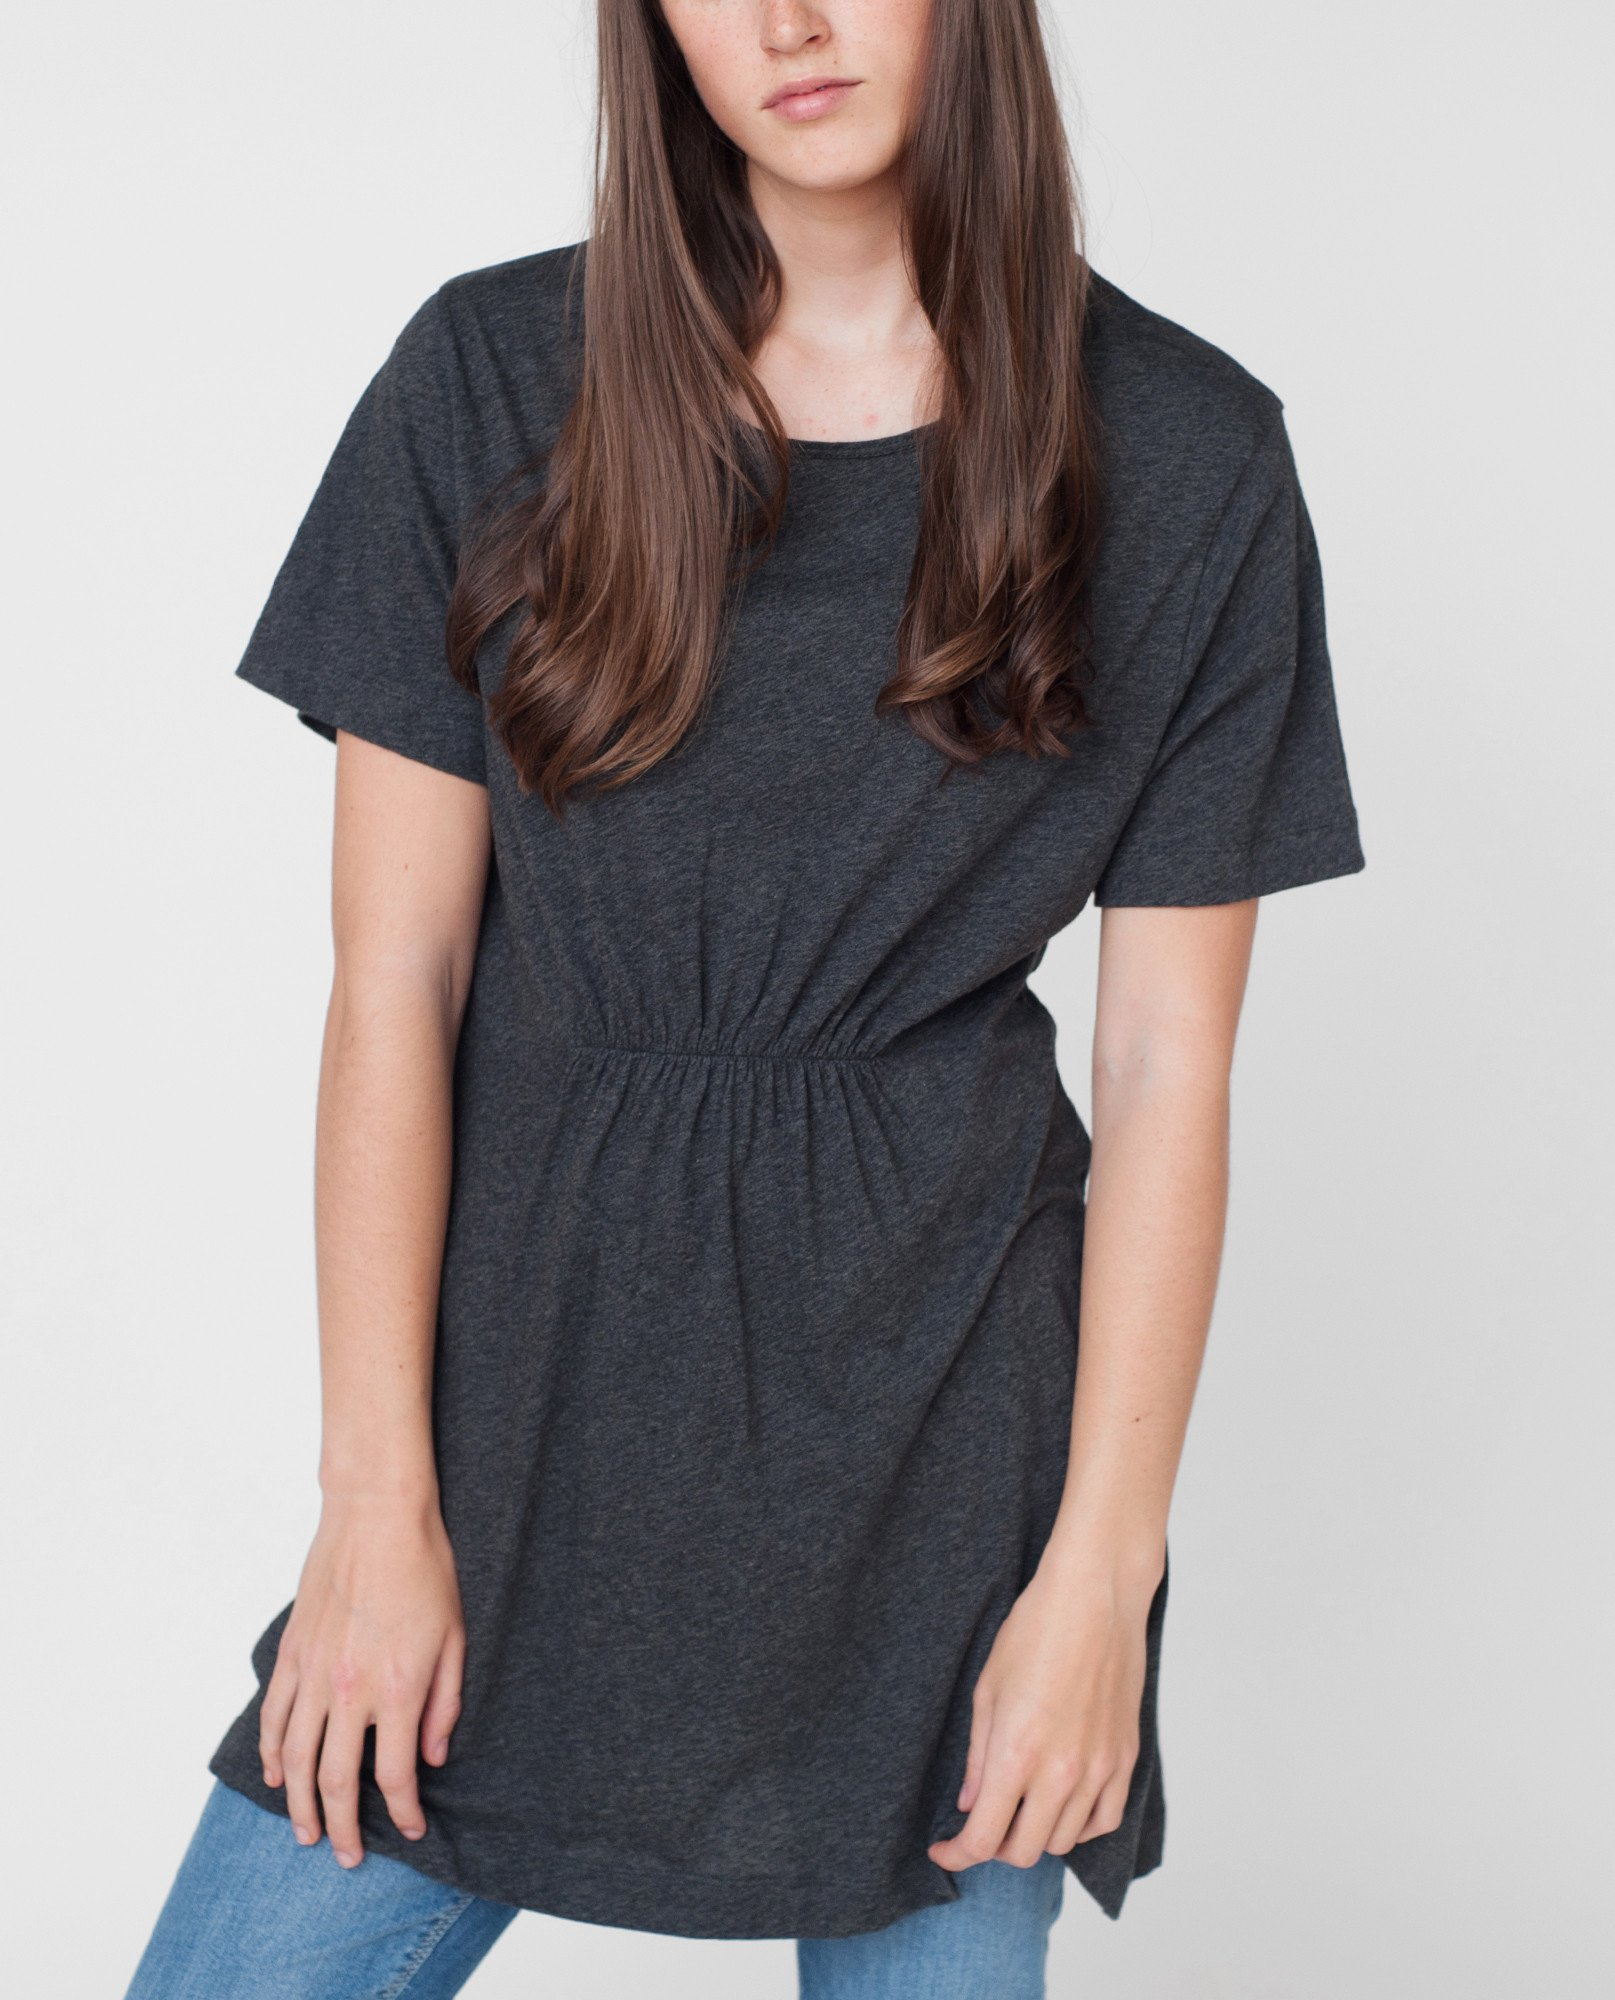 LOU Organic Cotton Tunic from Beaumont Organic